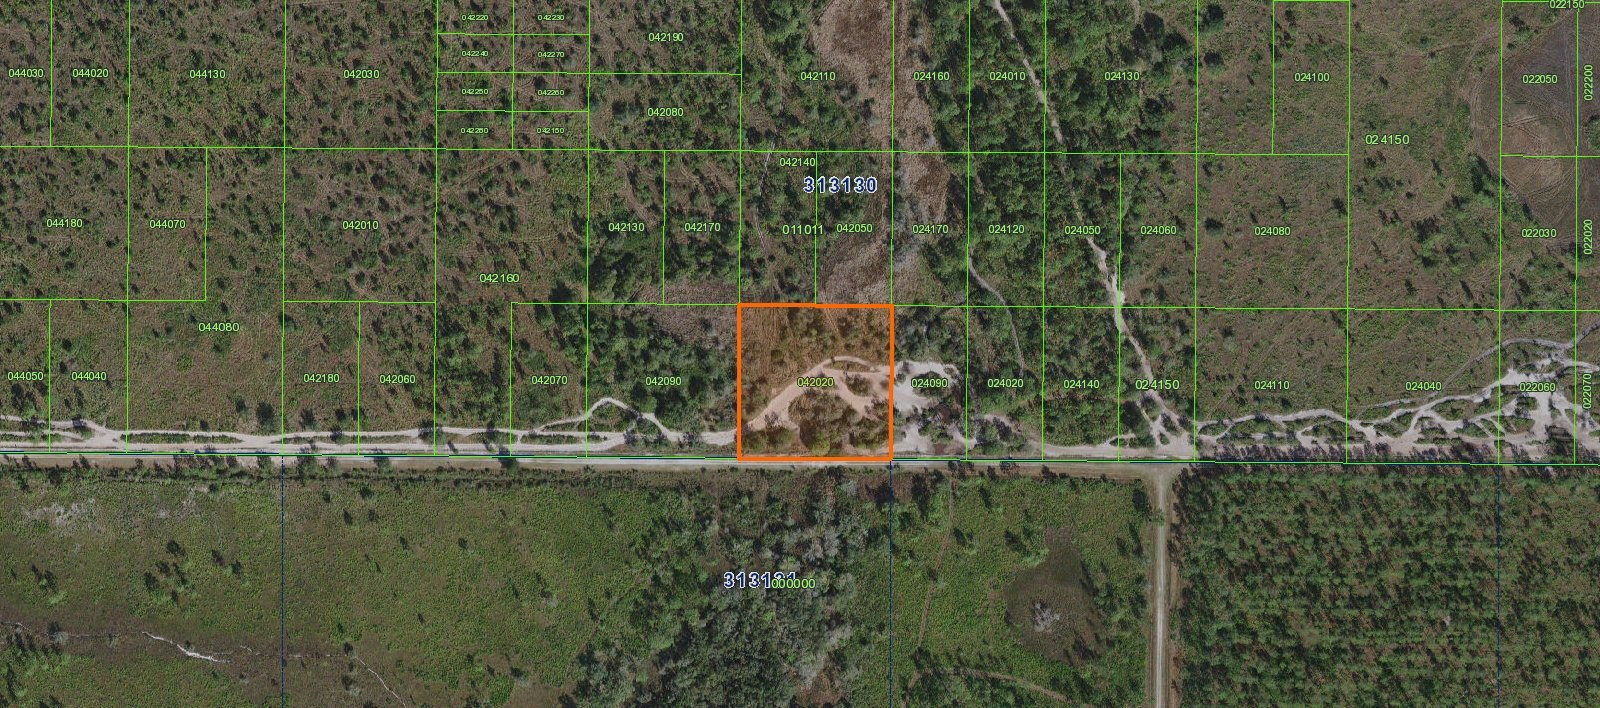 RIVER RANCH HUNTING GROUNDS, 2.53 ACRE TRACT, HUNT AND CAMP